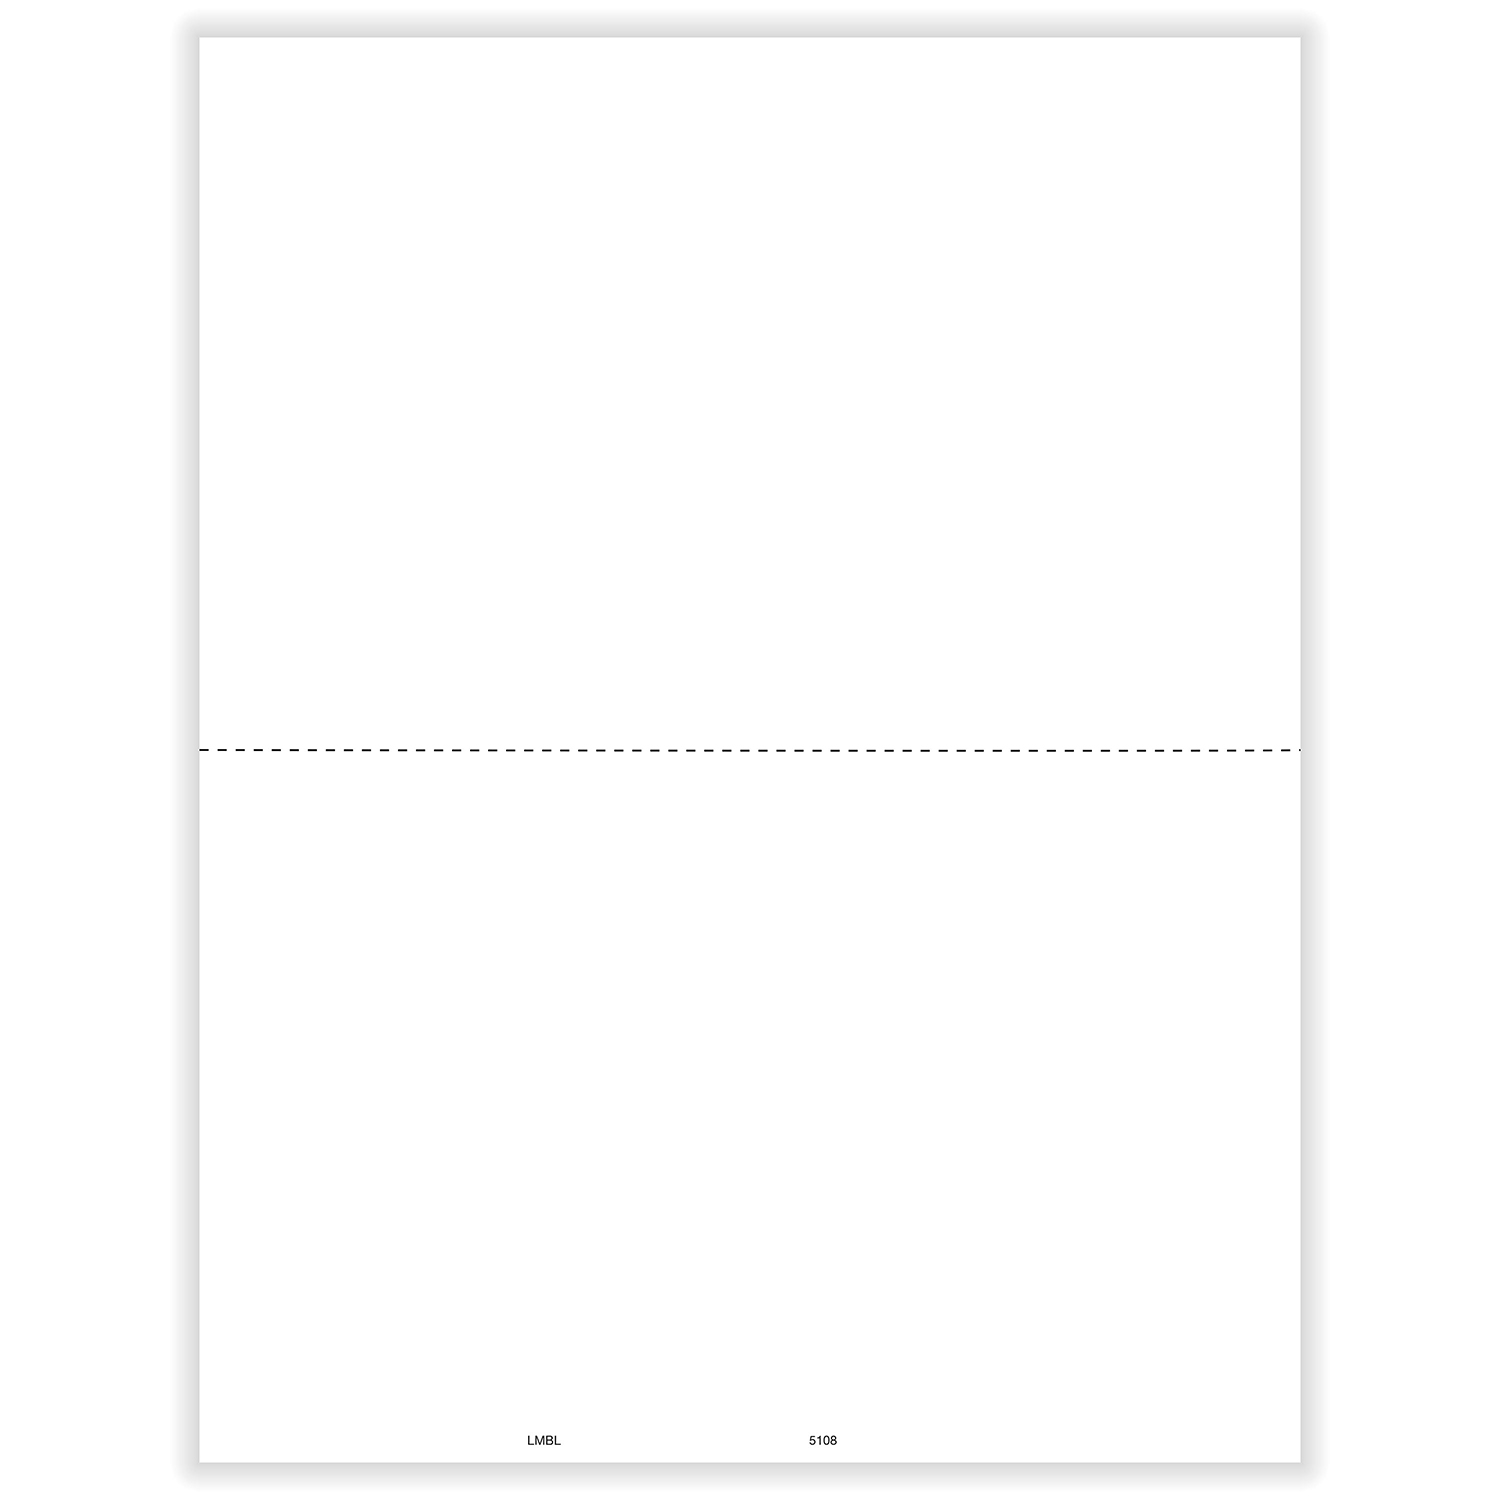 Picture of 1099-MISC 2-Up Blank w/Recipient Copy B with Backer Instructions